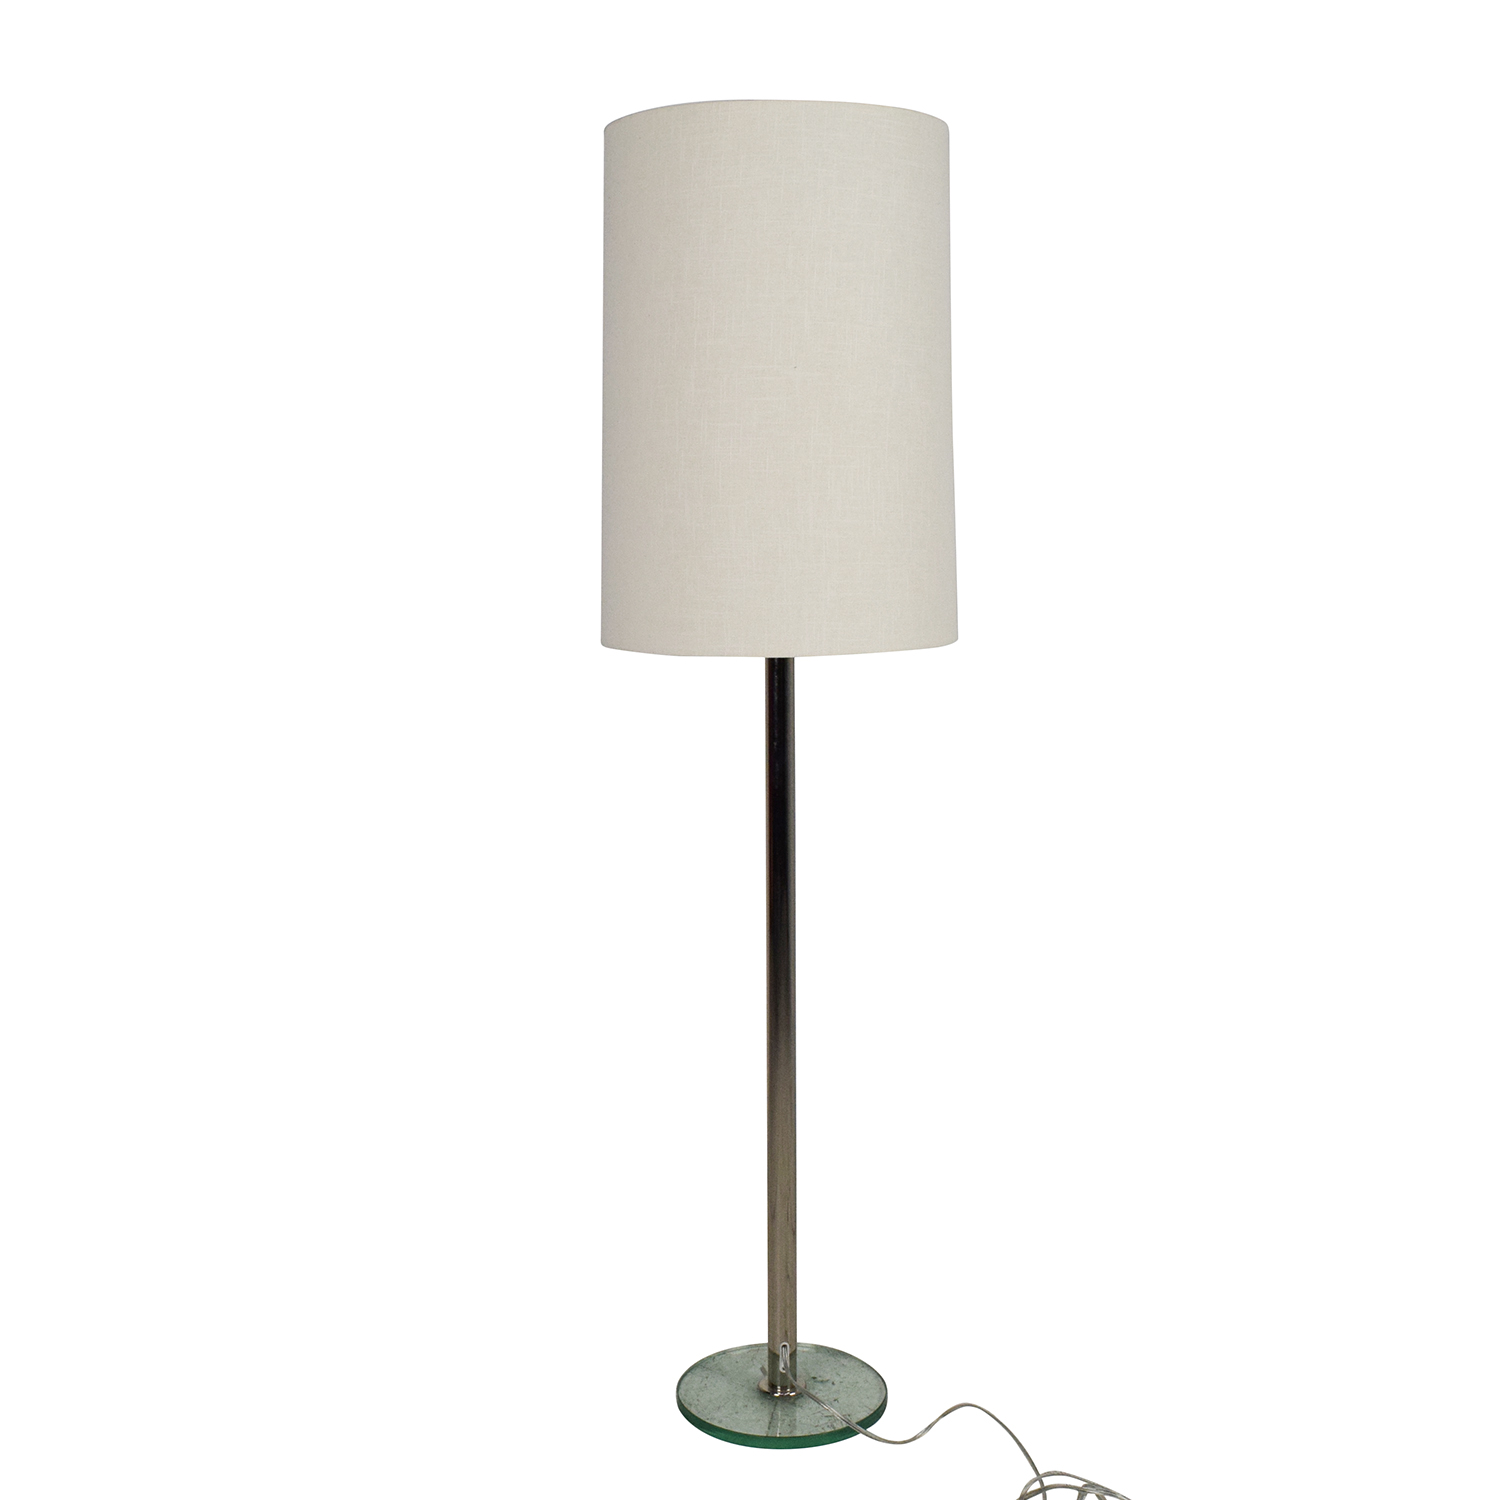 Crate & Barrel Crate & Barrel Claire Floor Lamp ... - 70% OFF - Crate & Barrel Crate & Barrel Claire Floor Lamp / Decor